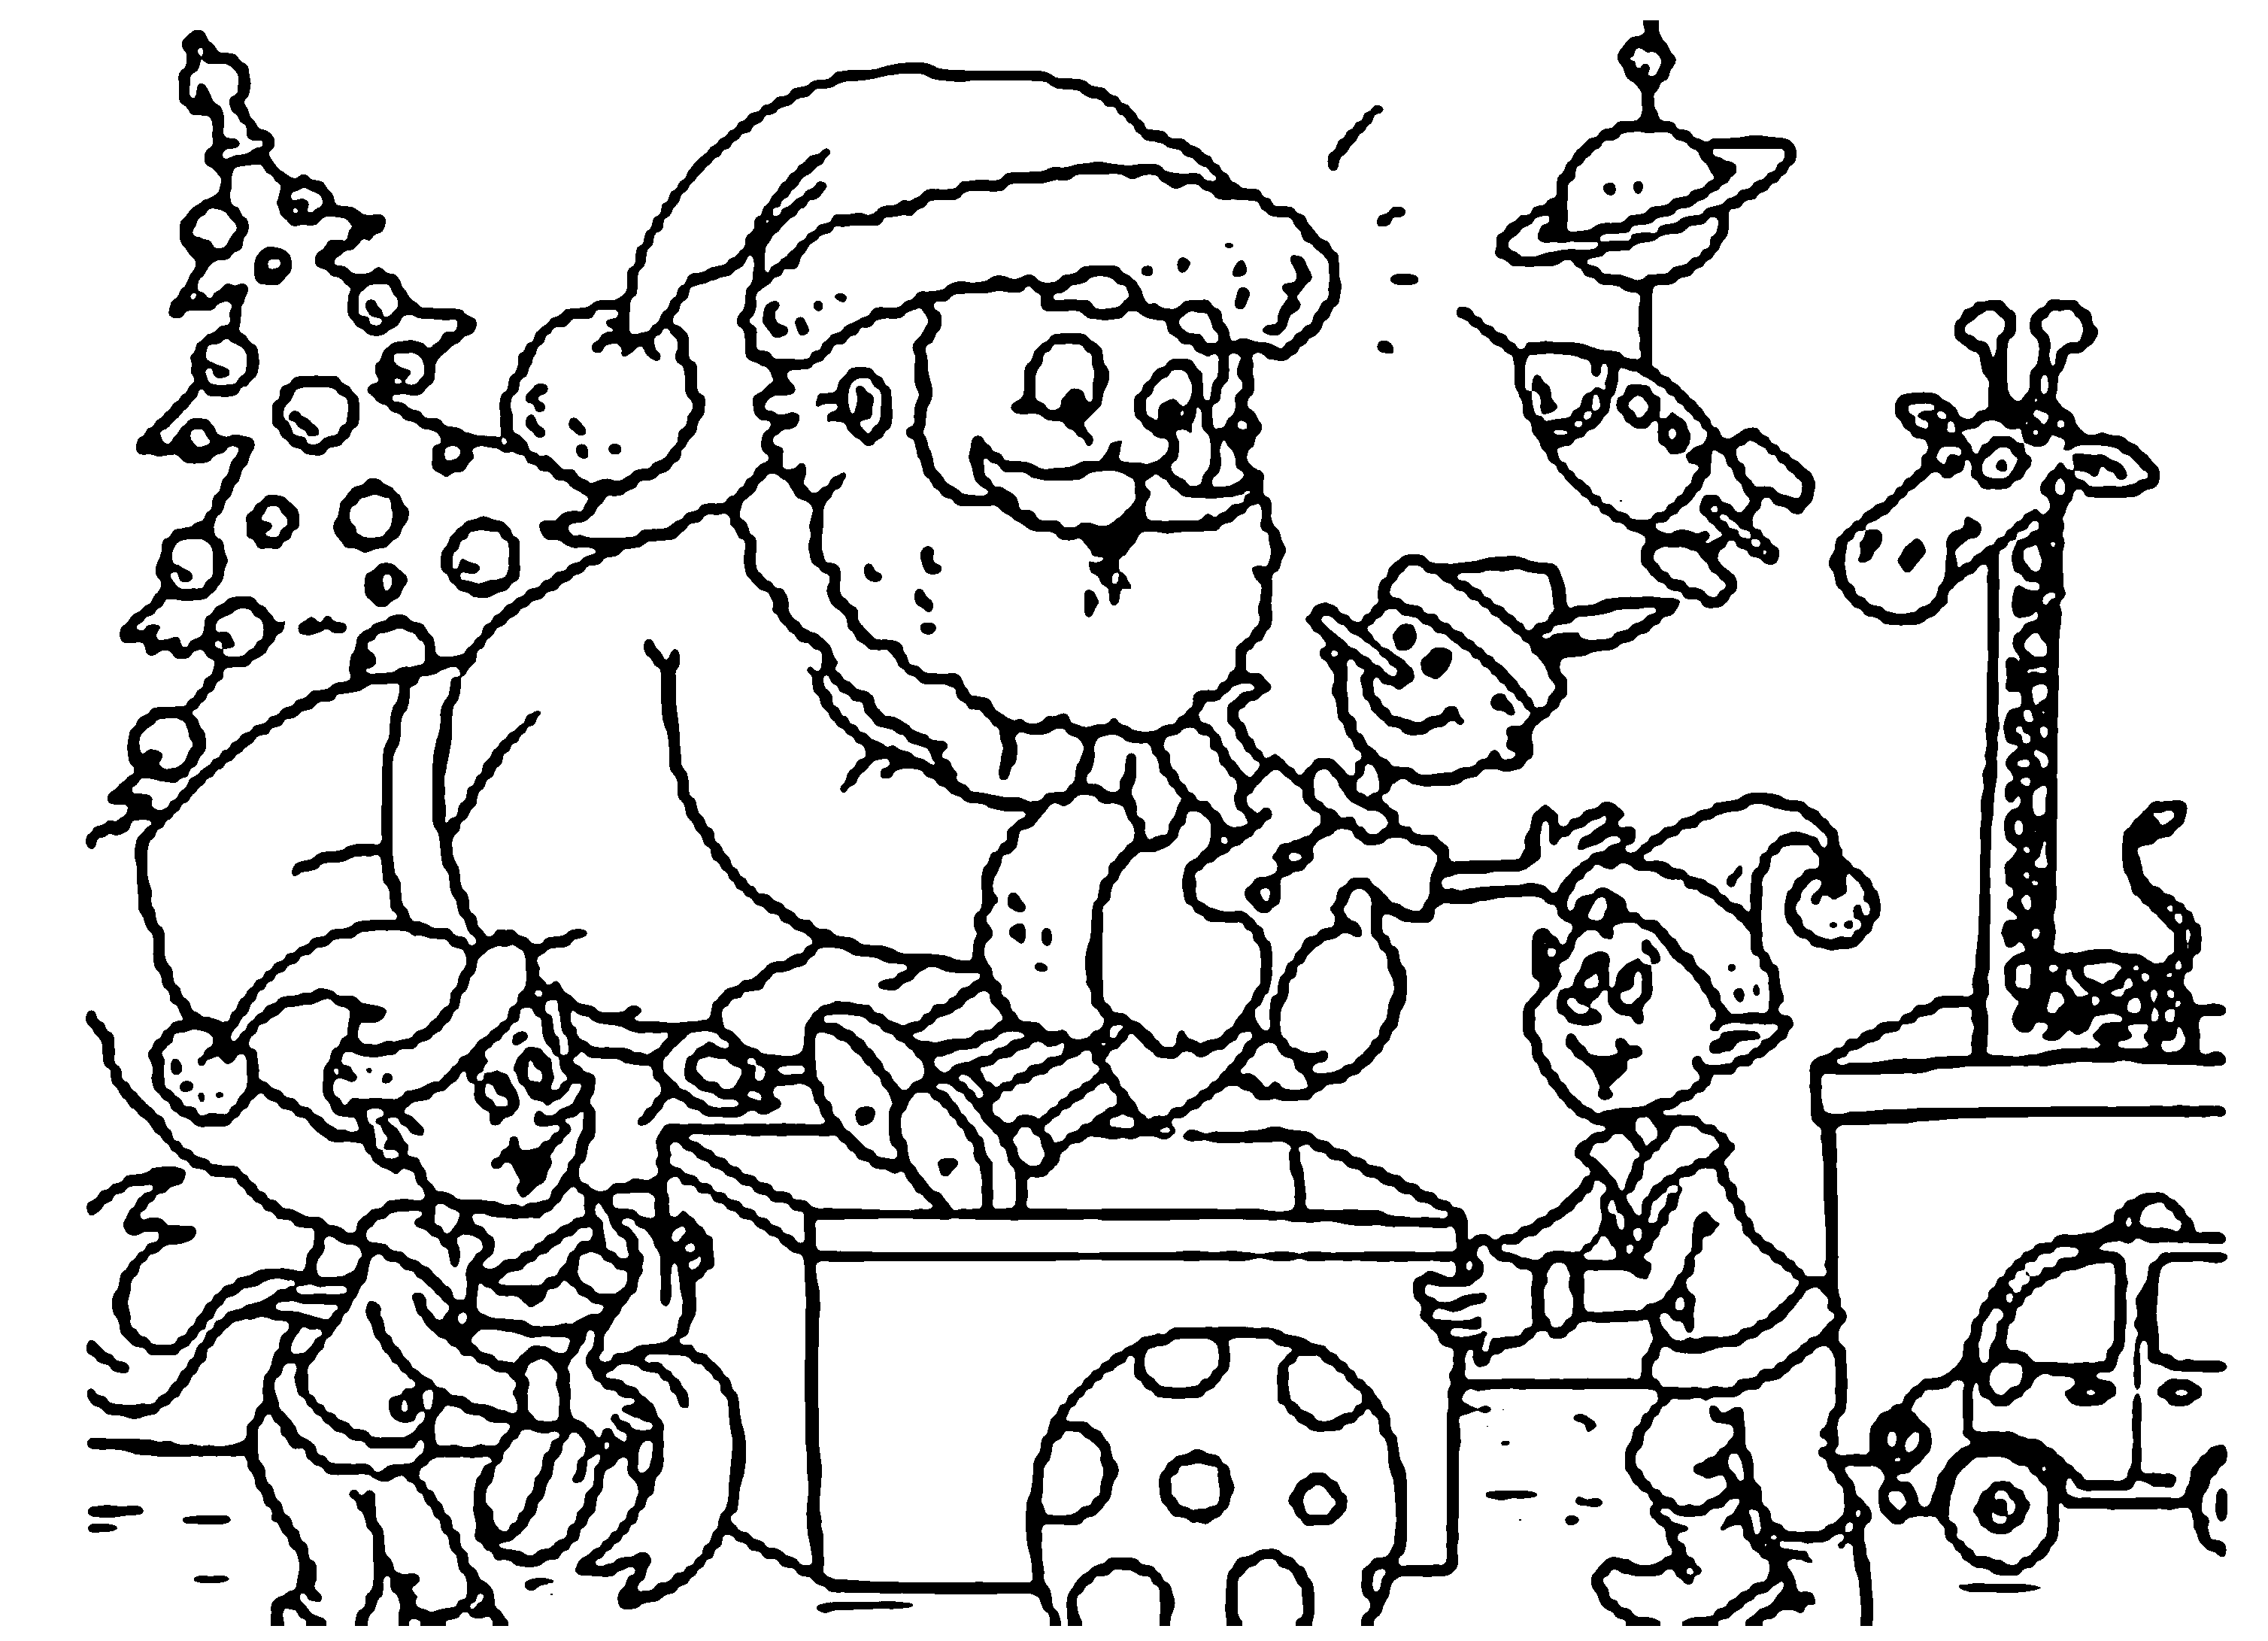 Free Elf Coloring Pages For Kids Drawing With Crayons